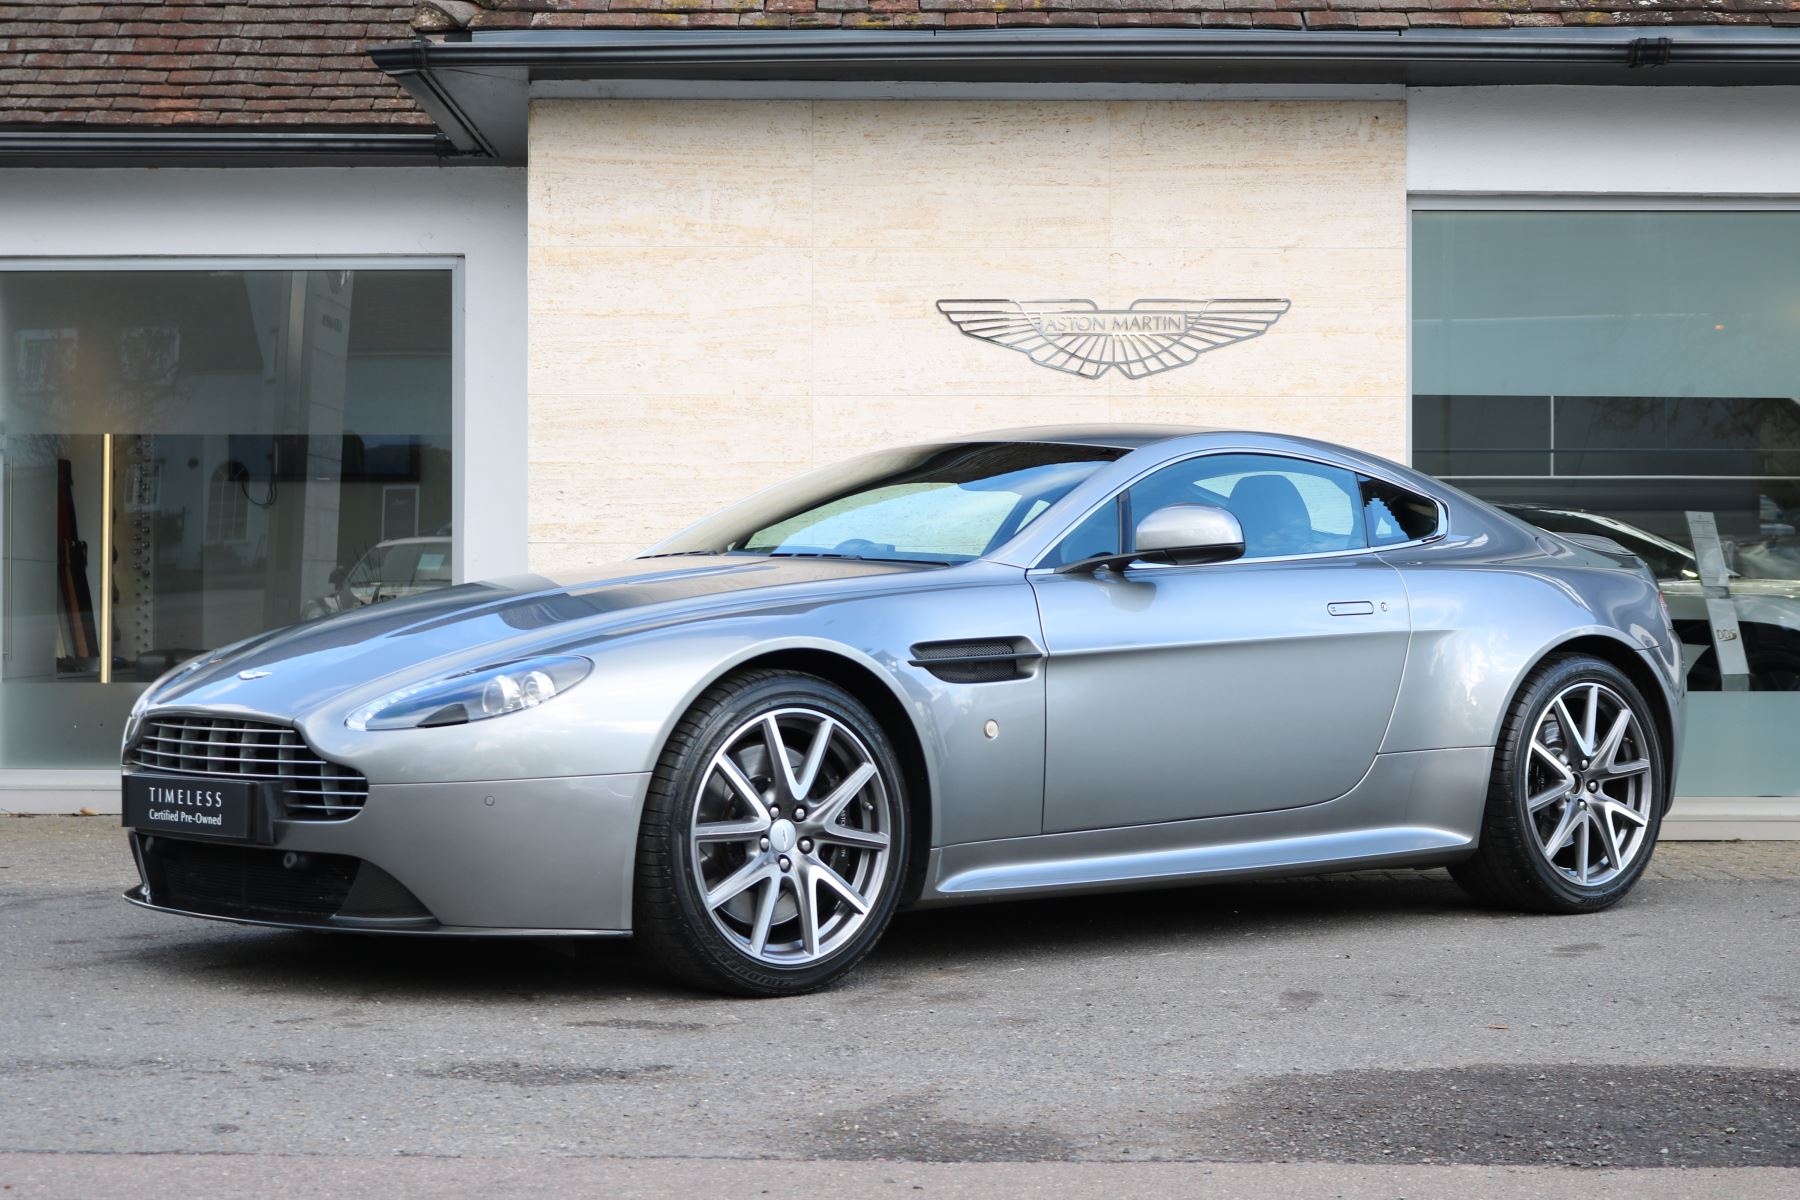 Aston Martin V8 Vantage S Coupe 2dr Sportshift 4.7 Automatic 3 door Coupe (2012)